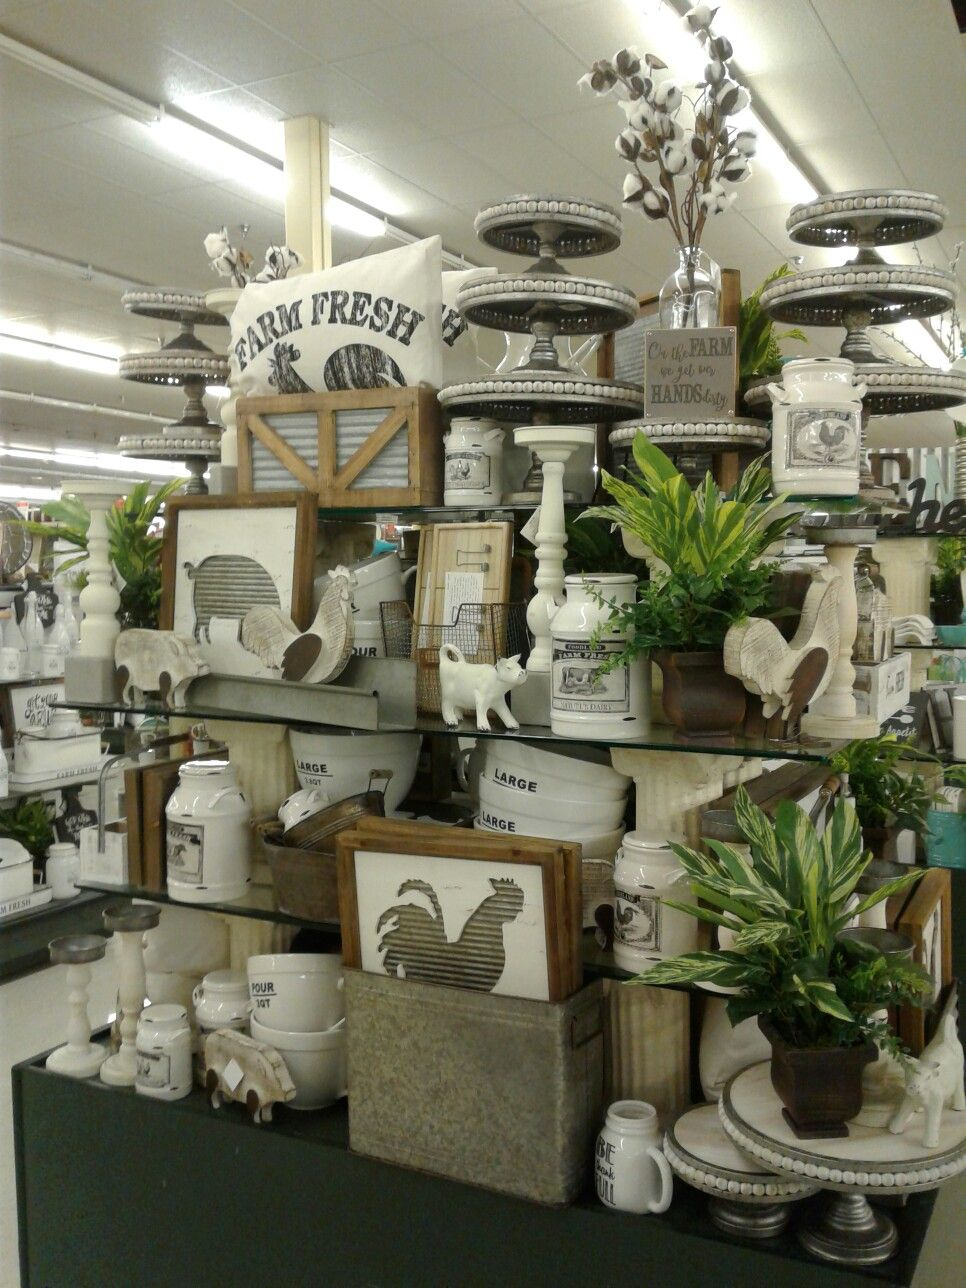 Wow! Great Farm House table display at Hobby Lobby in